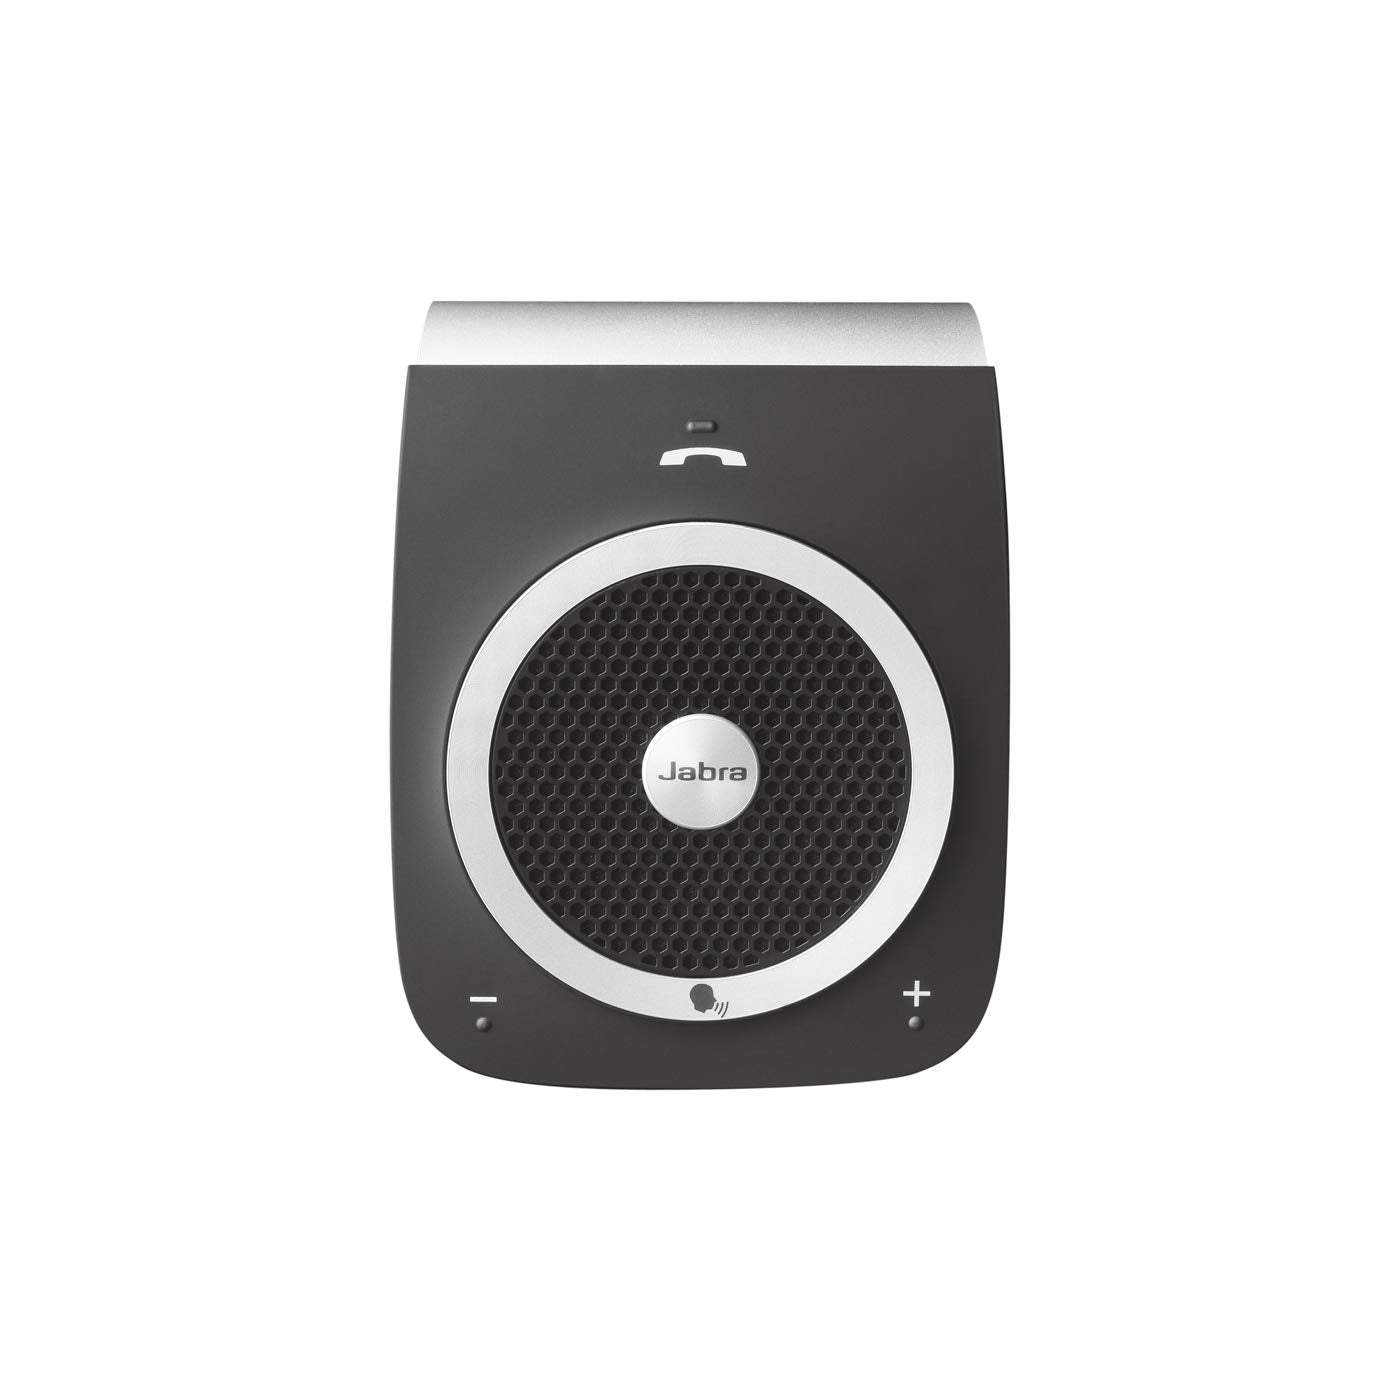 Jabra Tour Bluetooth Hands Free Speakerphone - Black